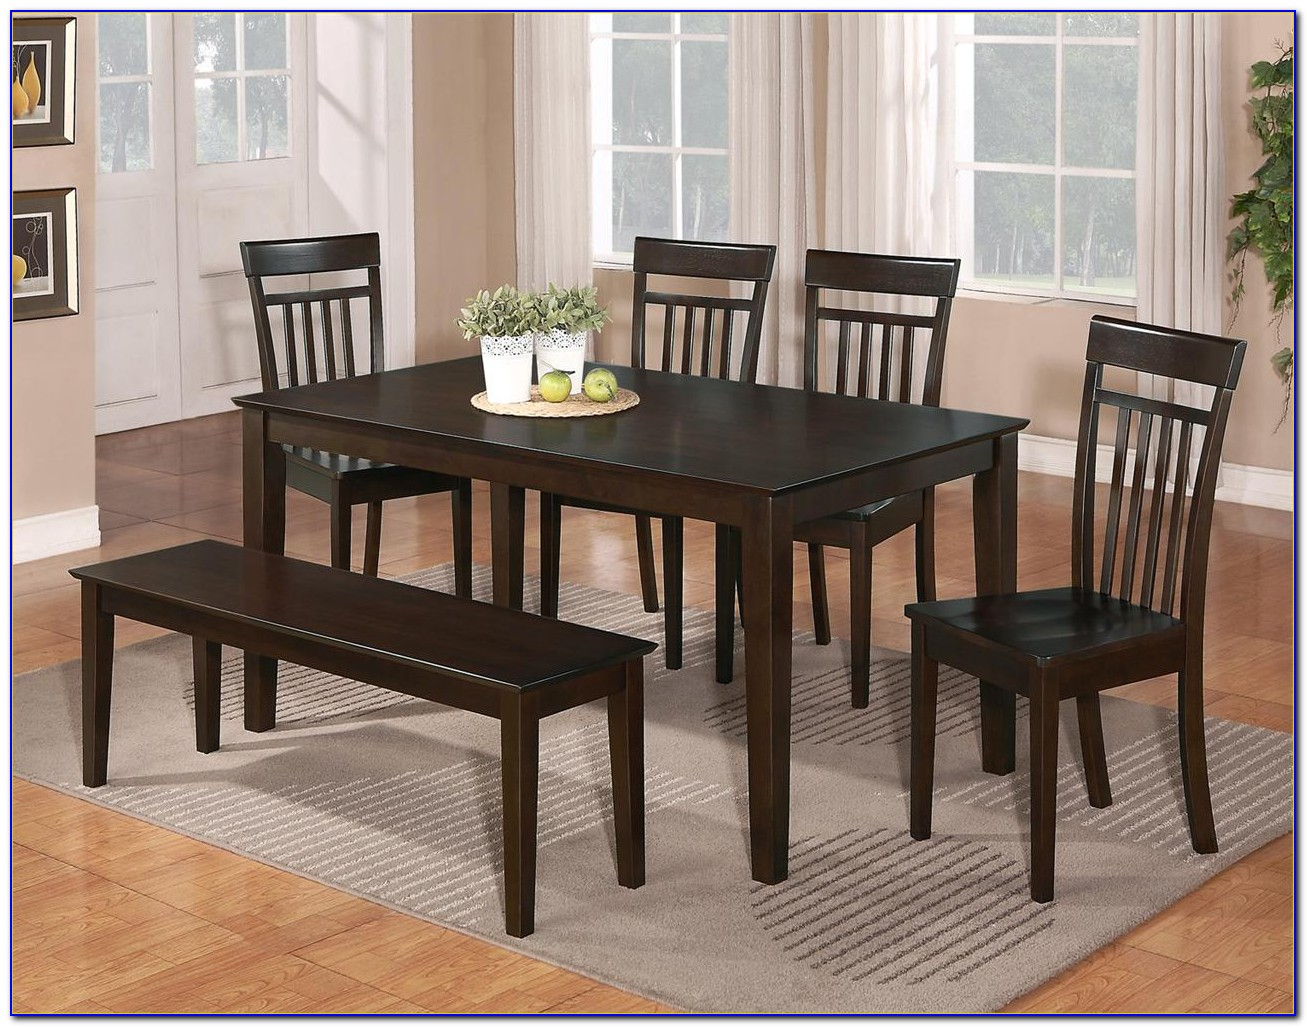 Dining Room Table Bench Dimensions